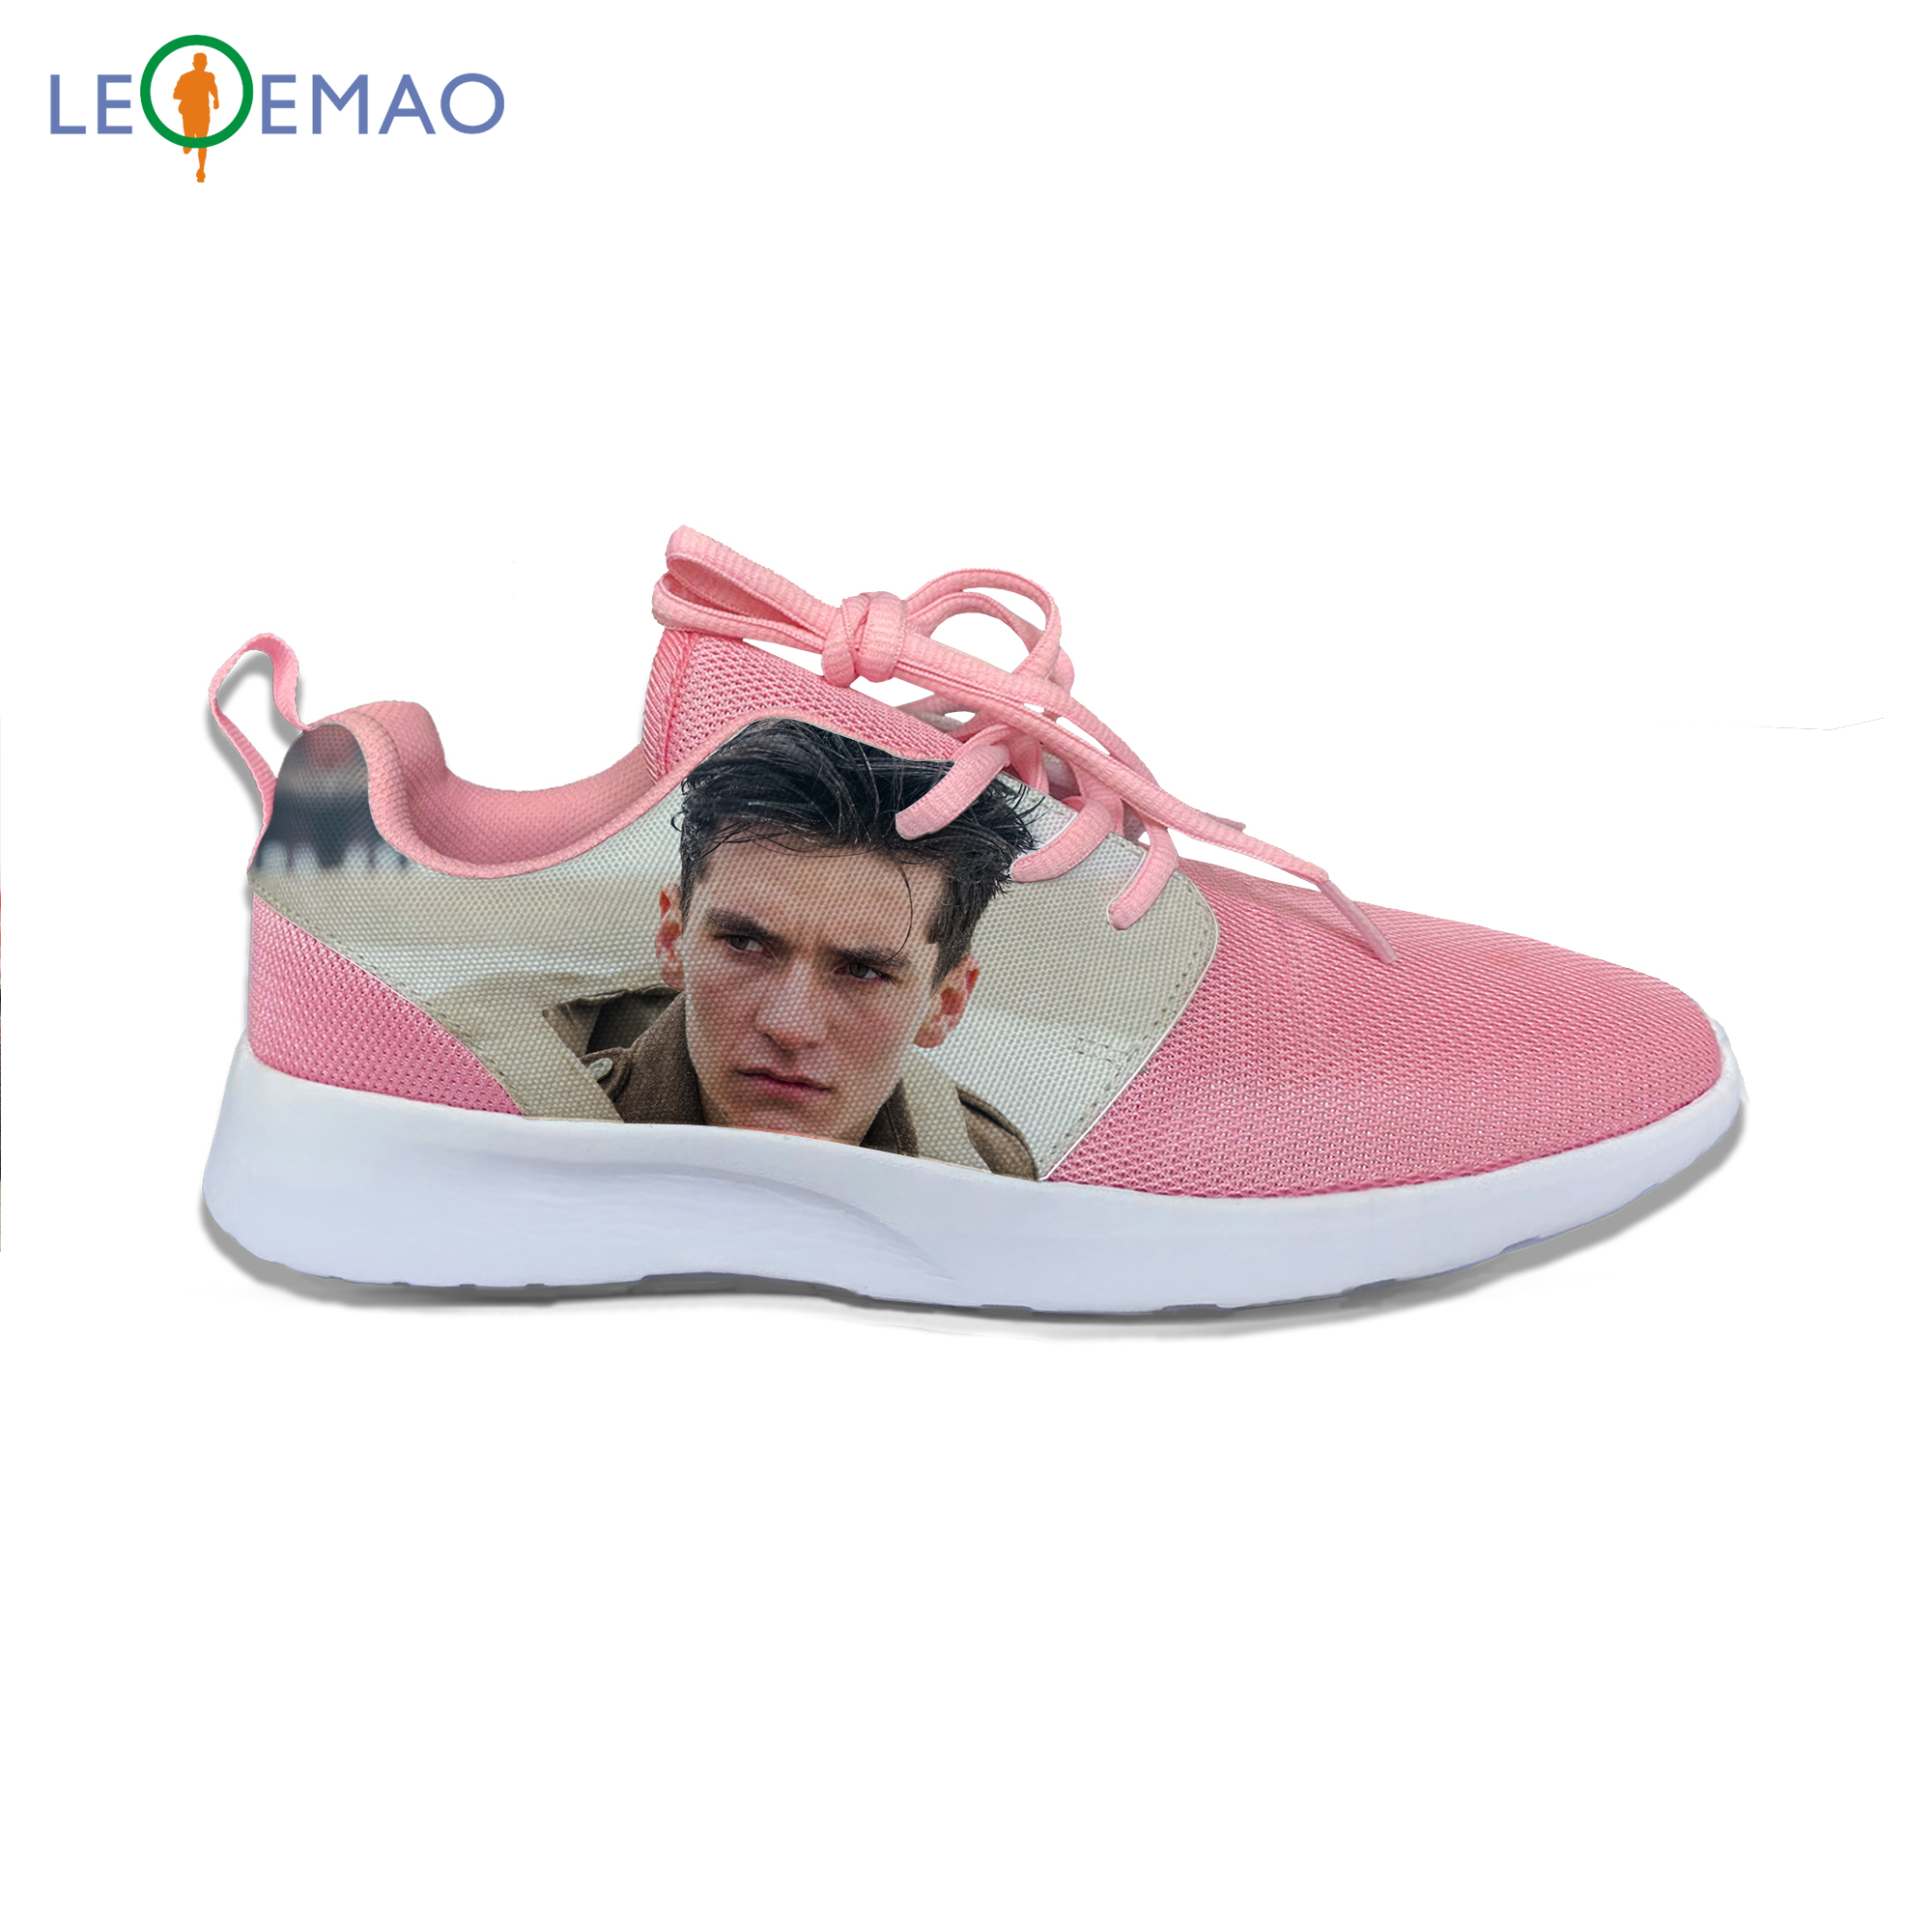 Running Shoes For Men Sneakers Hot Cool Vogue Handiness Breathable War Suspense Movie For Dunkirk Air Mesh Shoes Breathable image